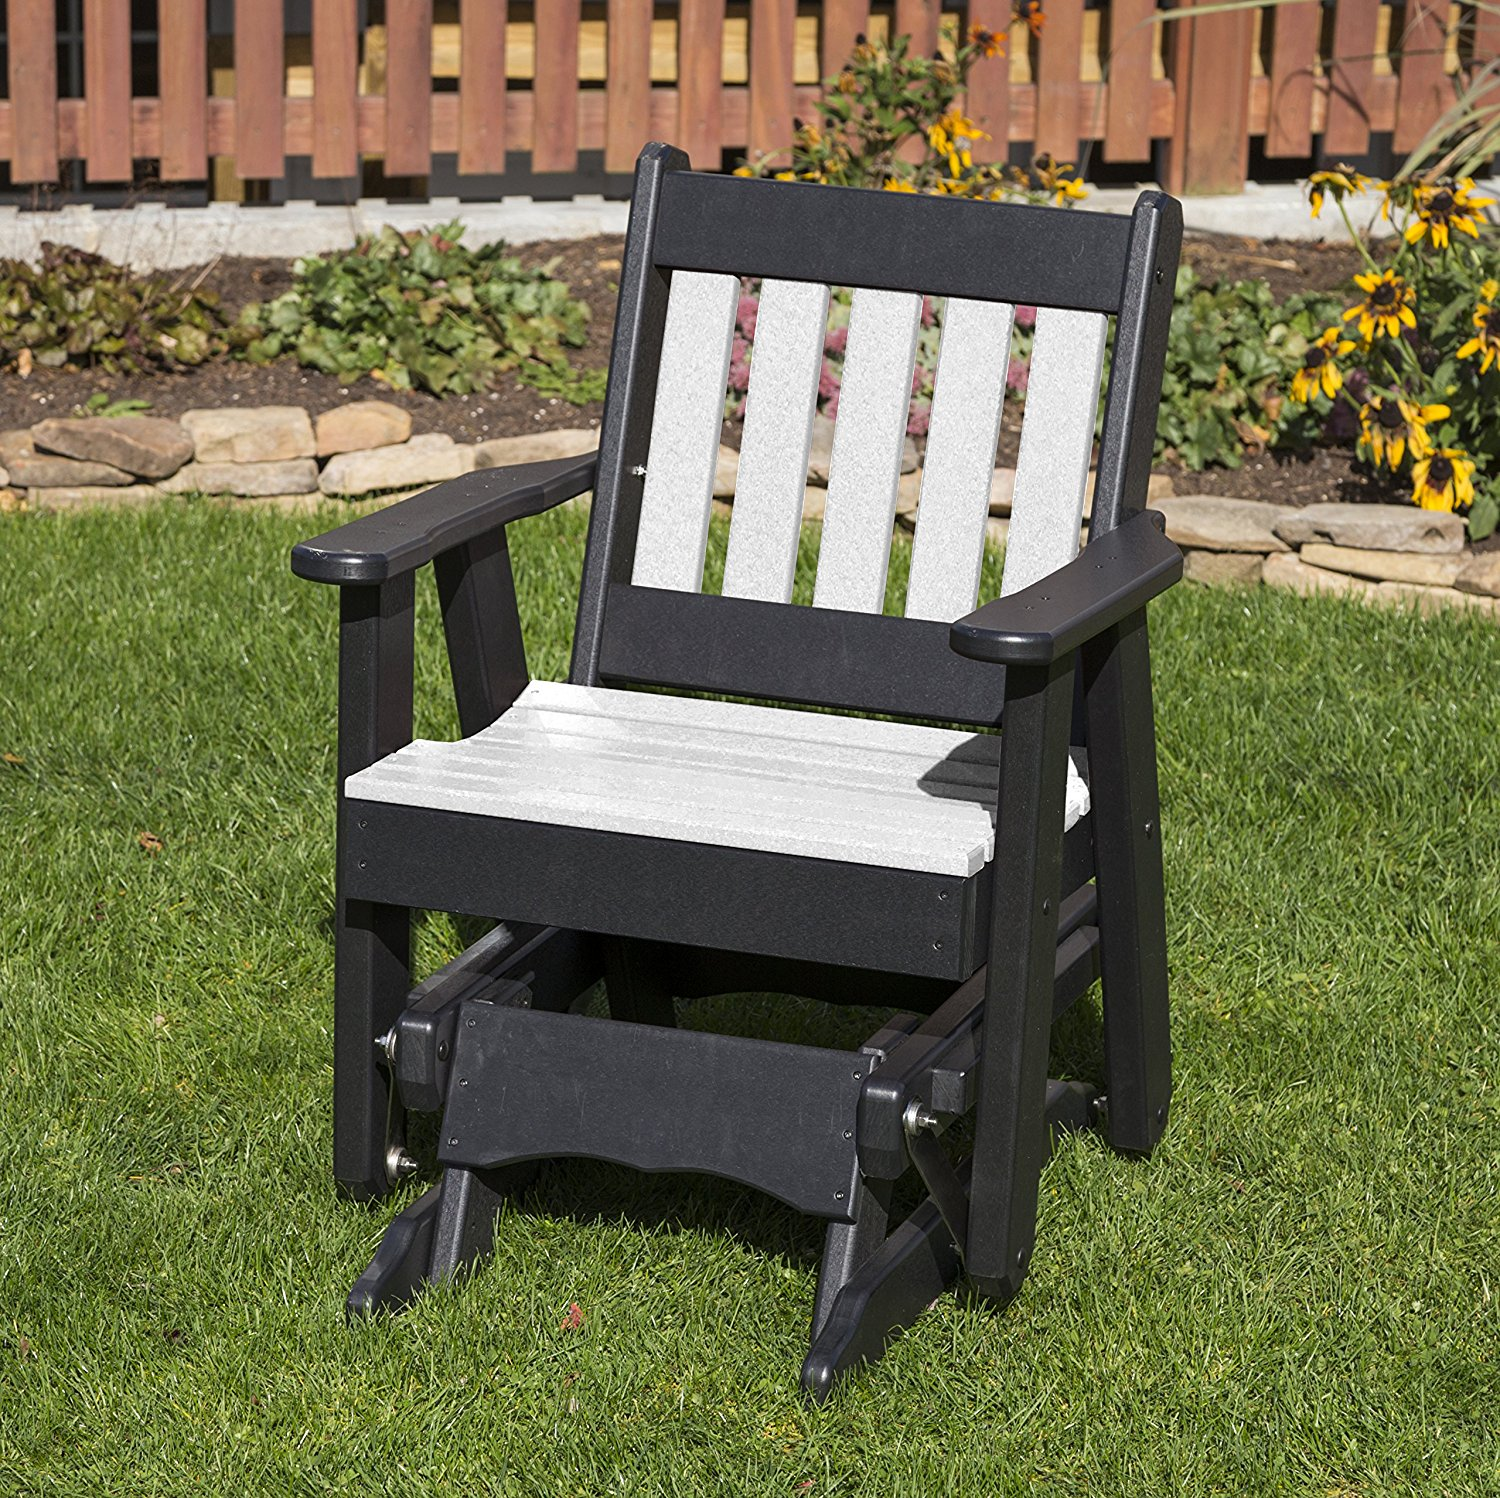 Outdoor Patio Garden Lawn Exterior Bright White Finish Poly Lumber Mission 2 Ft Glider Everlasting - Amish Crafted